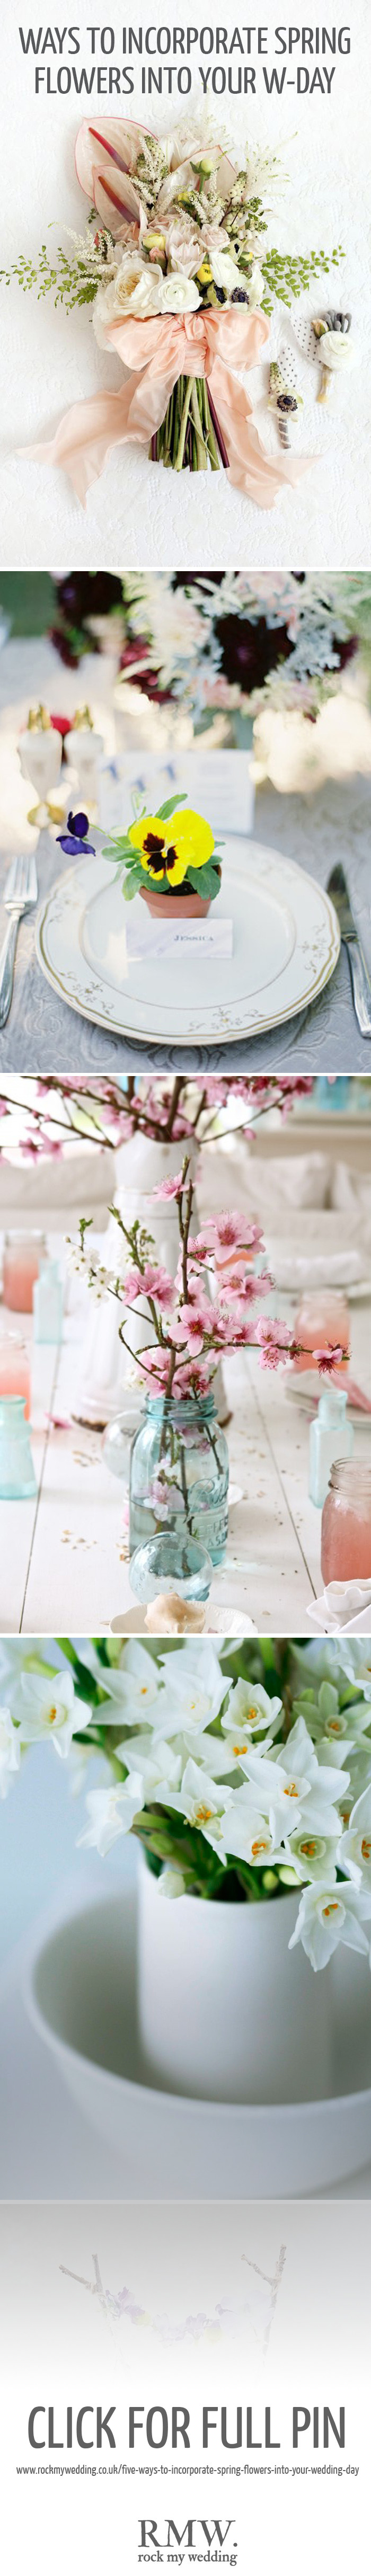 RMW Guide to Incorporating Spring Flowers into Your Wedding Day